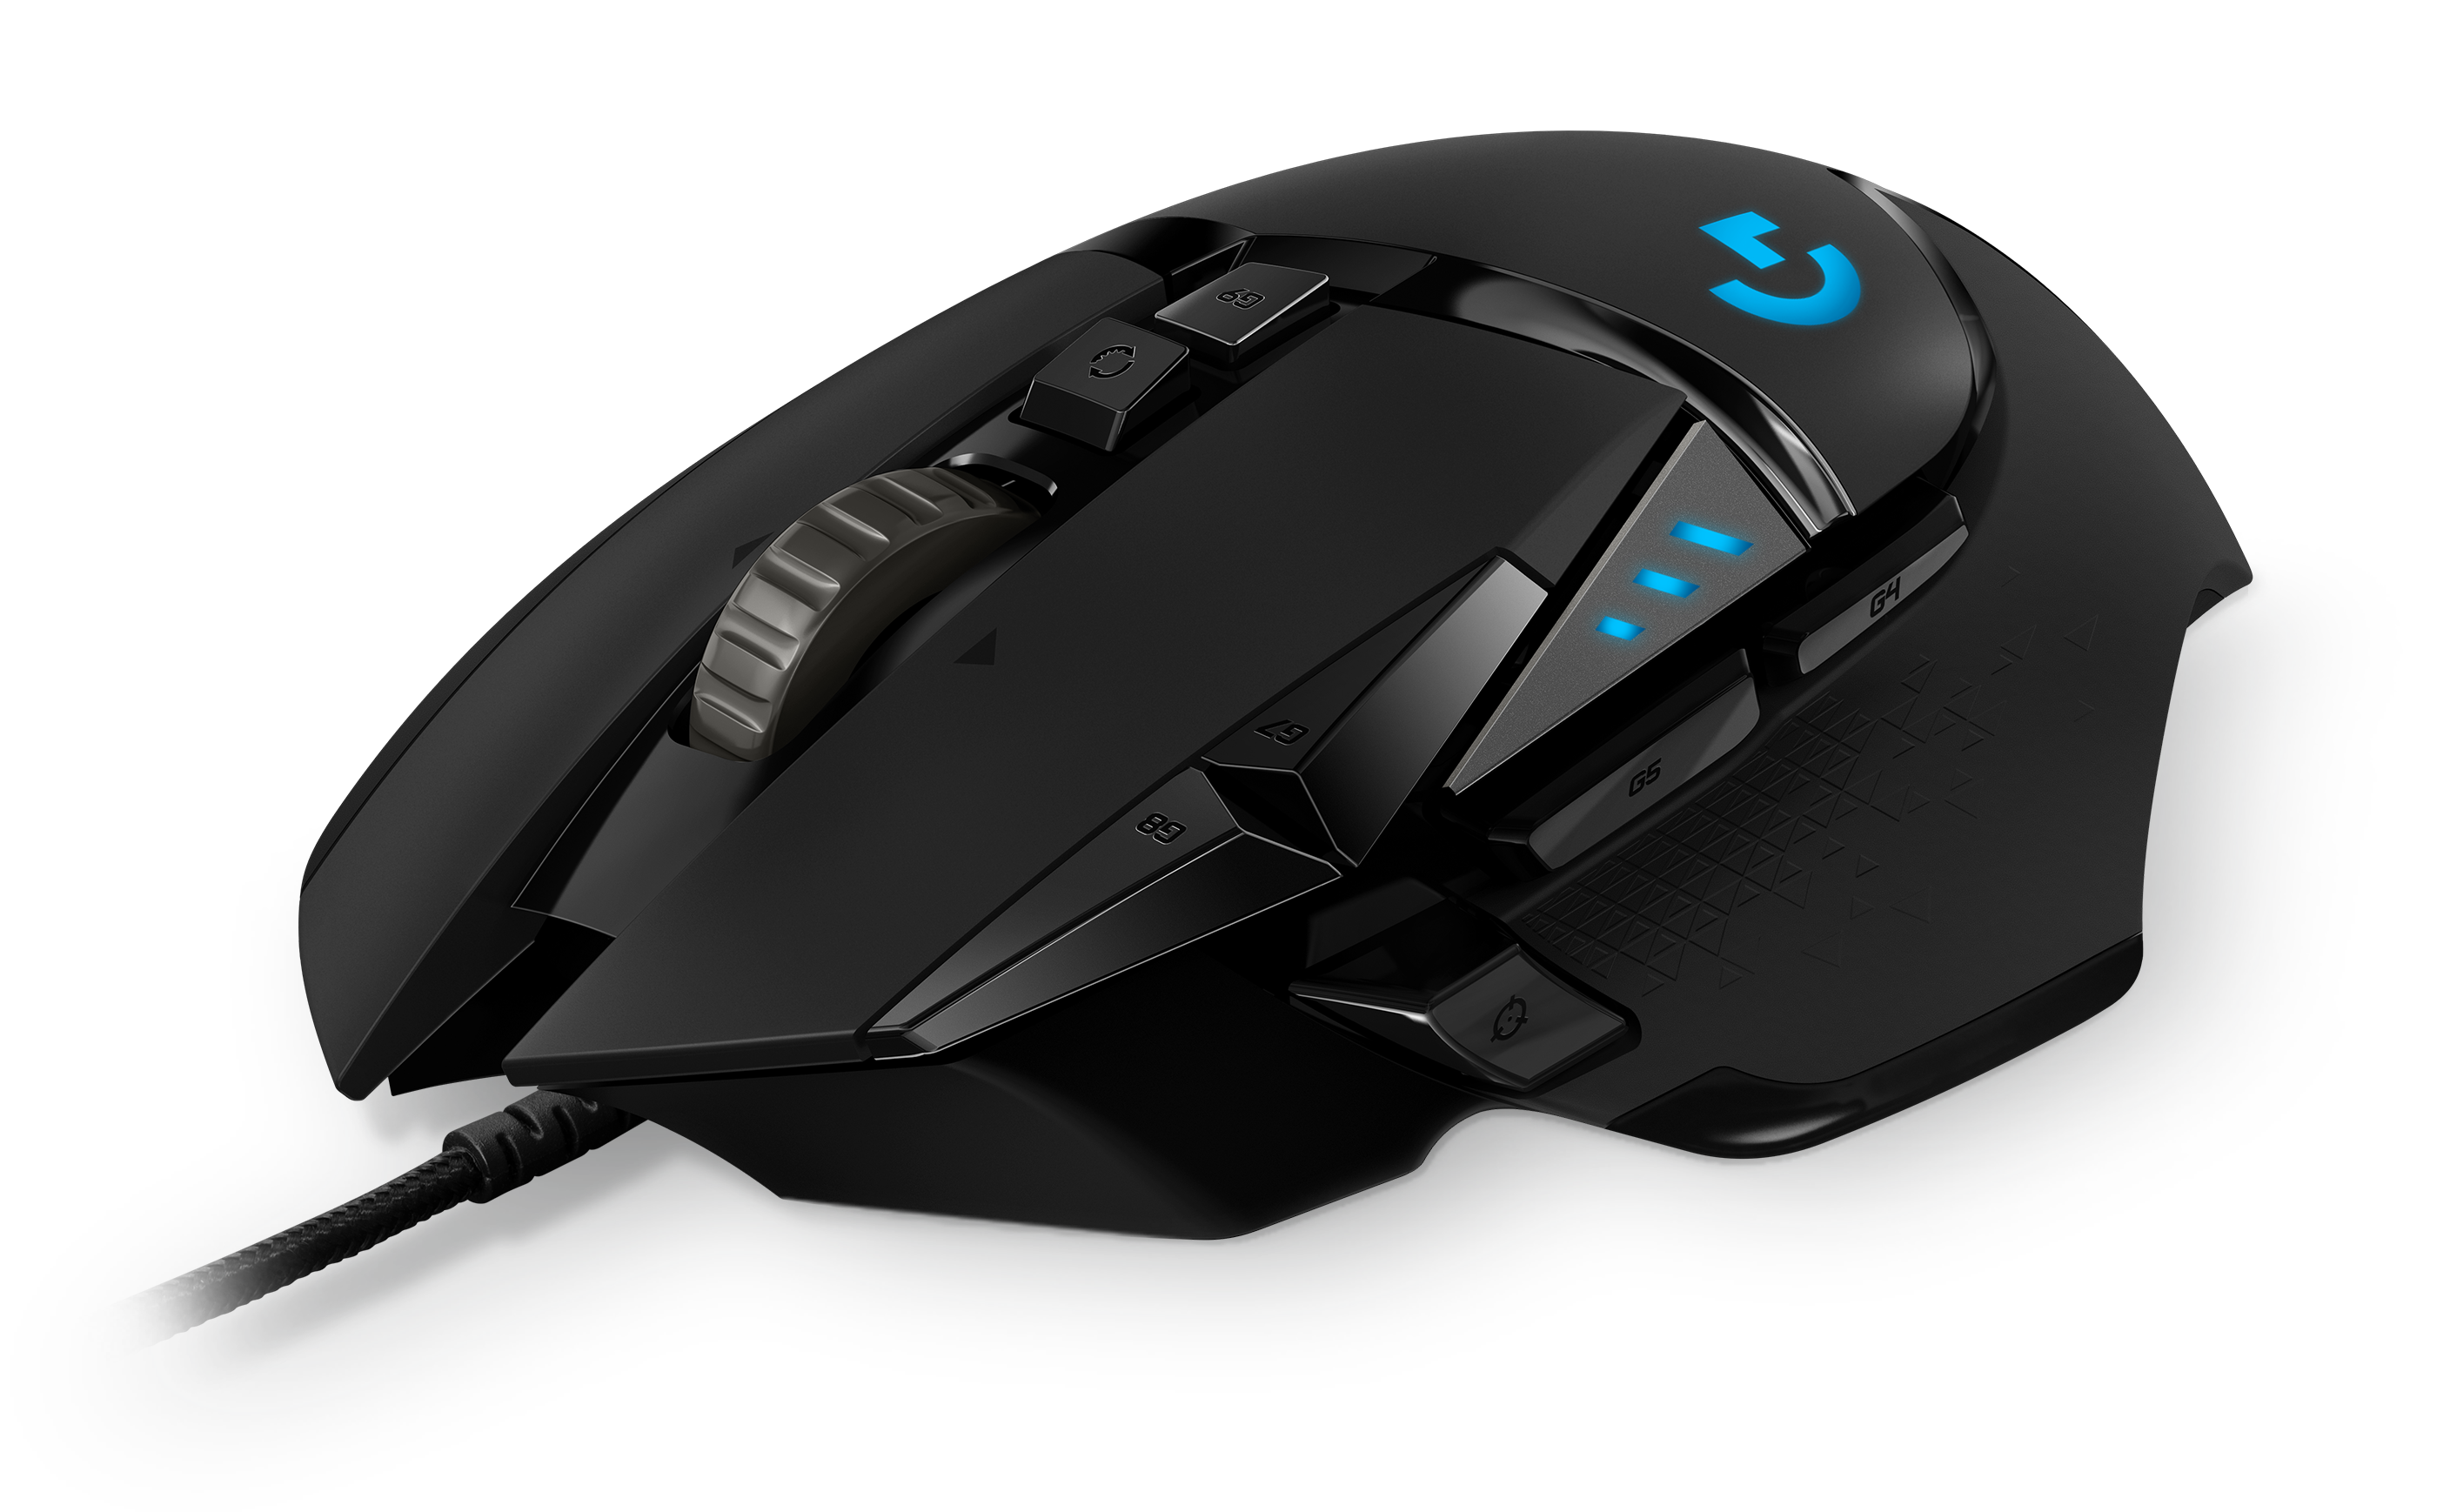 Logitech G502 Hero Gaming Mouse An Upgraded Version G Pro